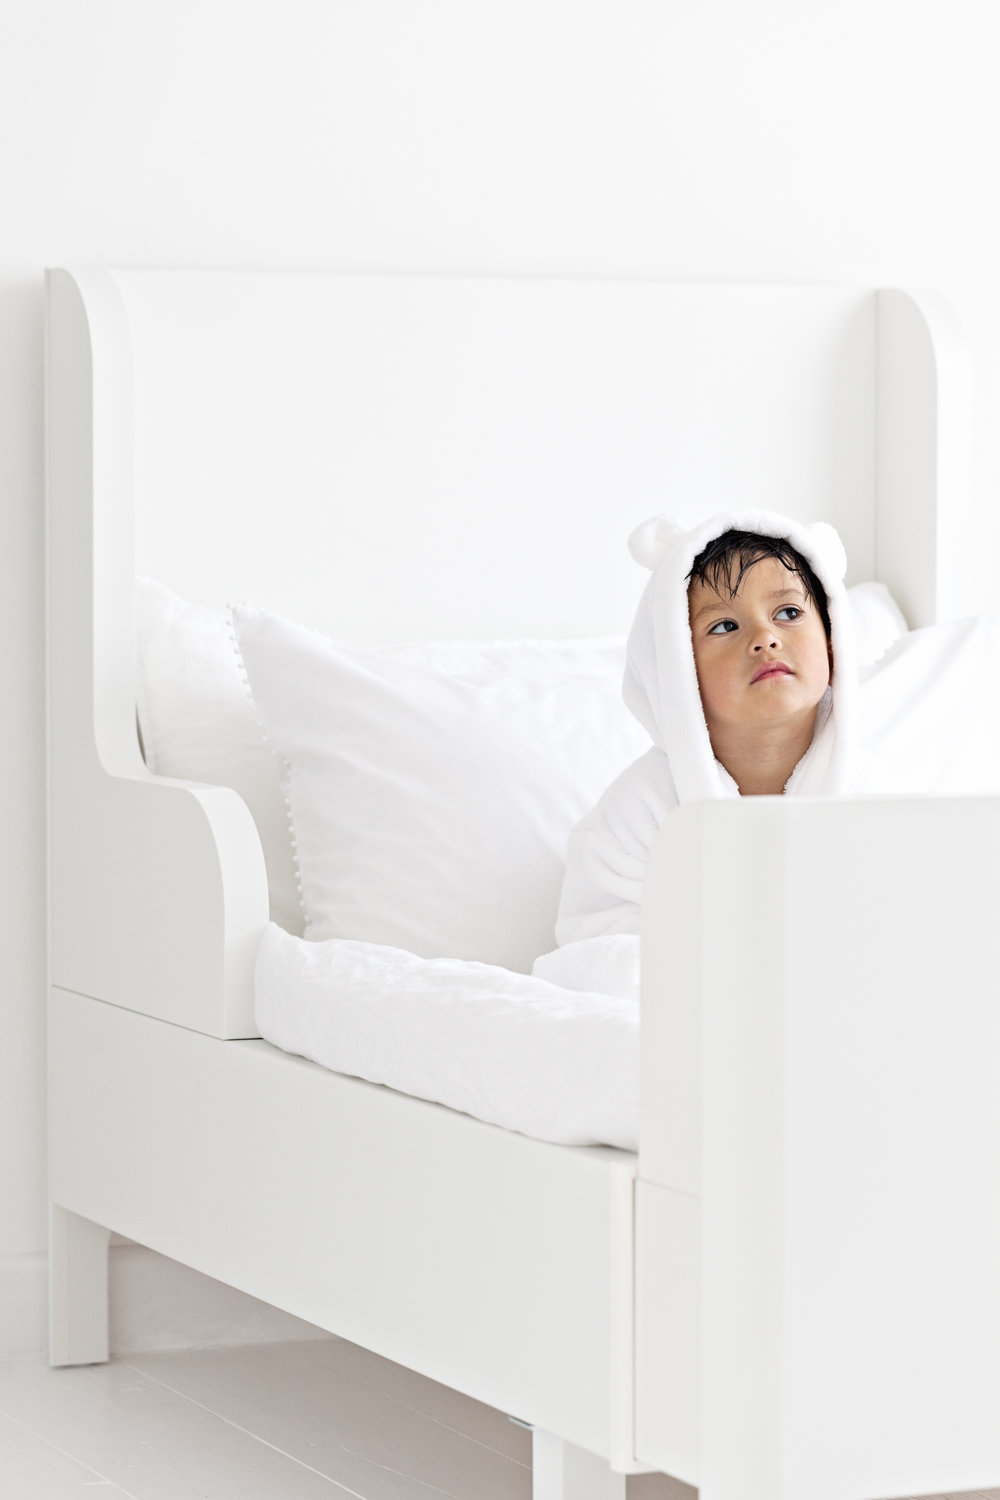 Kids Hydrocotton Robe from   The Little White Company   | Avignon Bedding from   The White Company